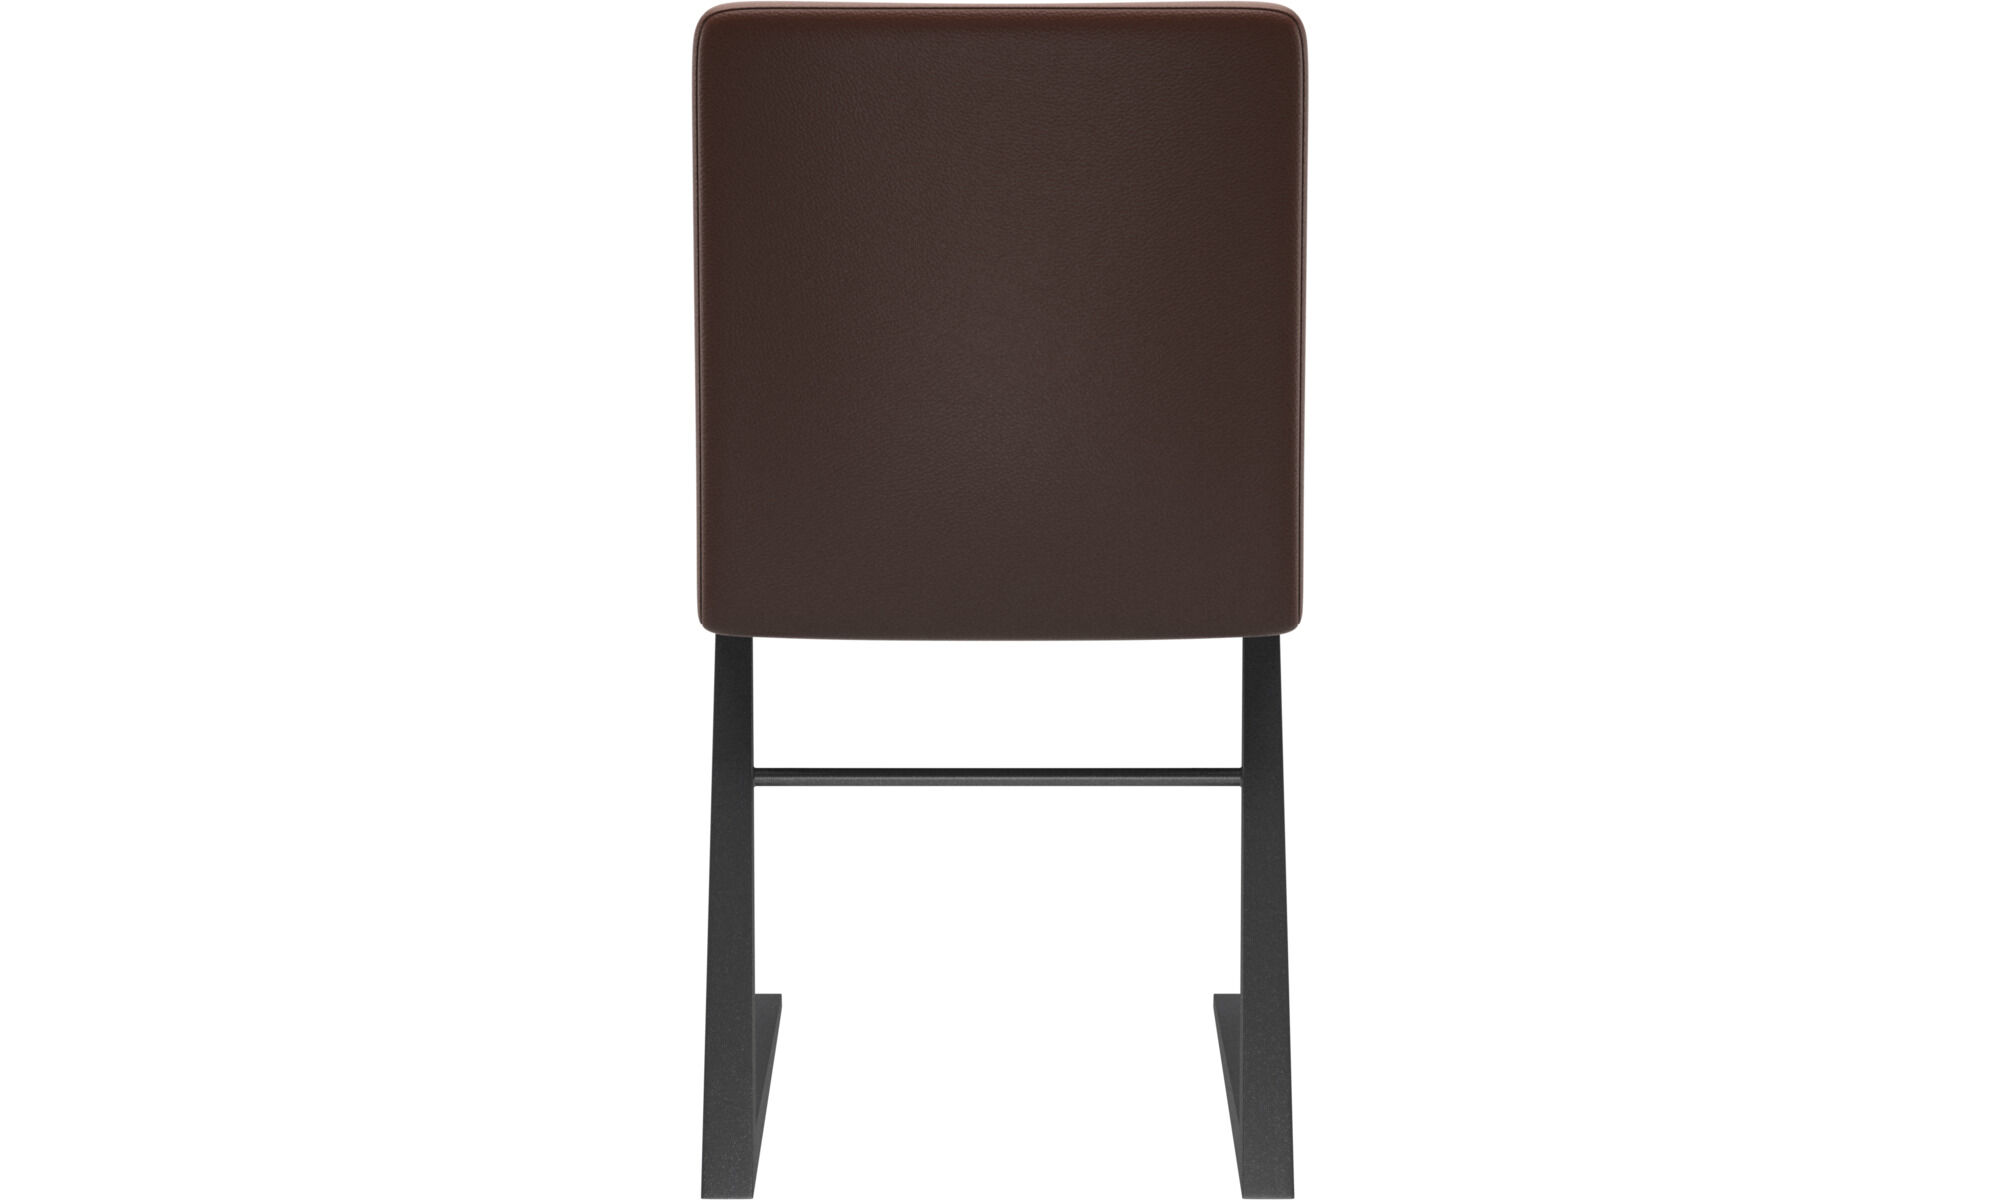 Mariposa Deluxe chair (QTY 4,6 or 8)